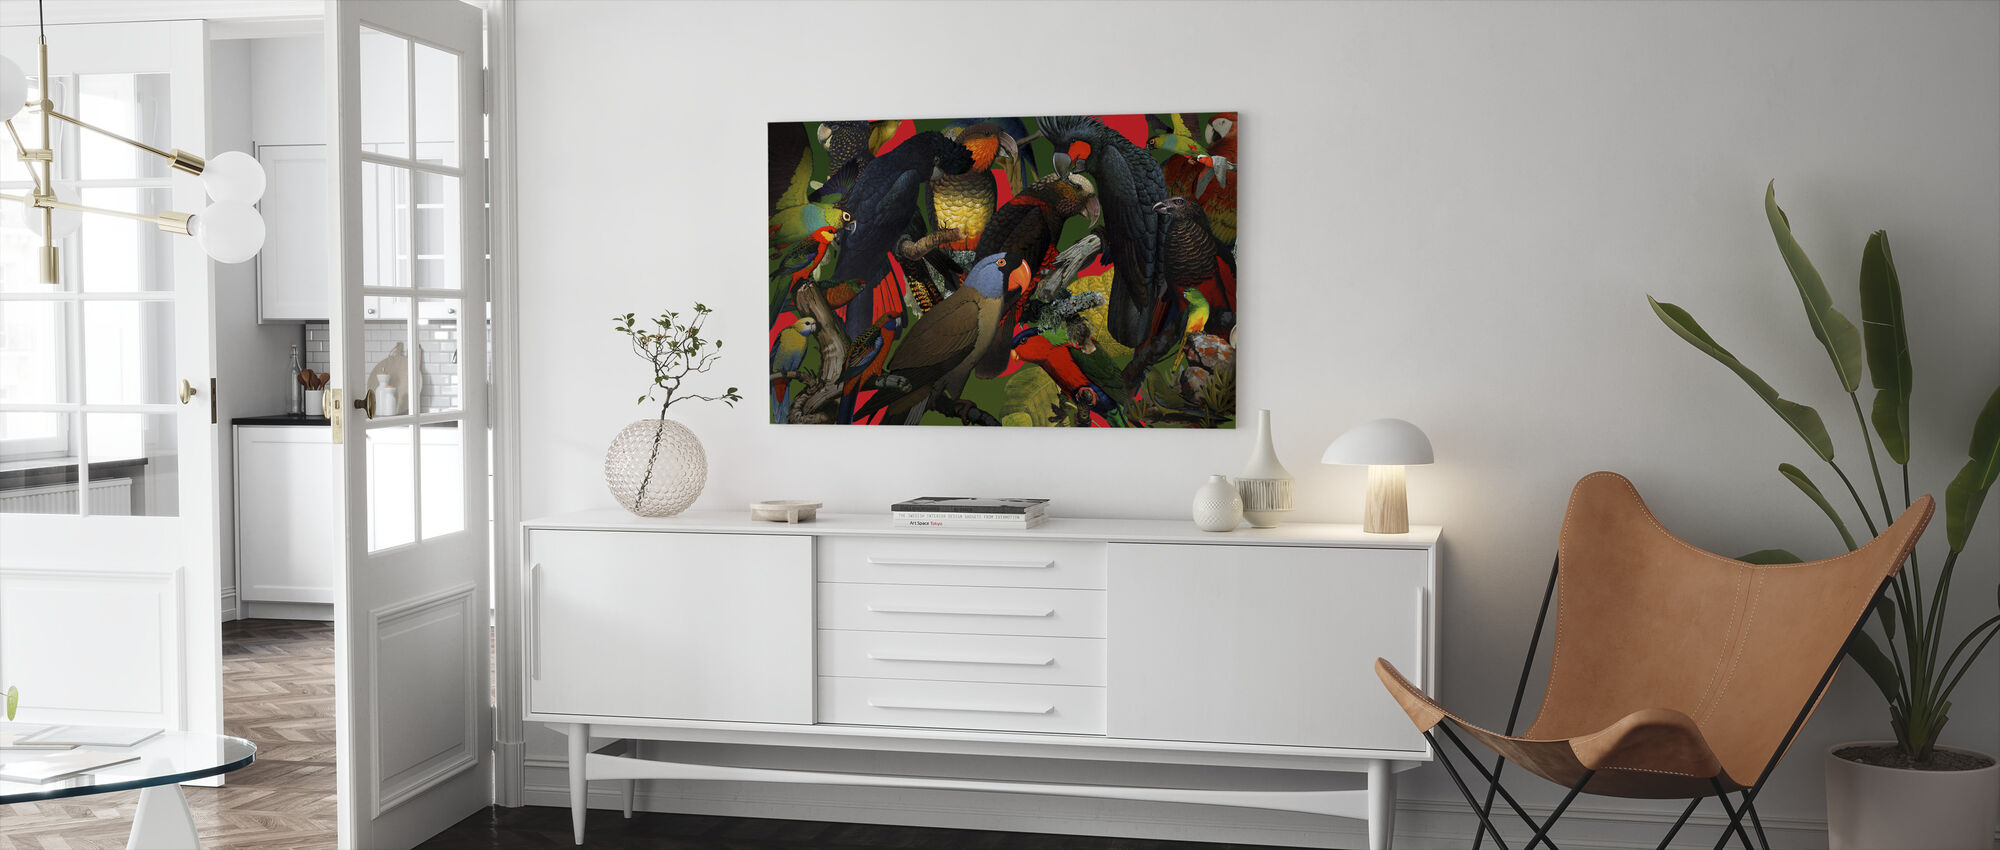 Family Portrait - Steinberg - Canvas print - Living Room